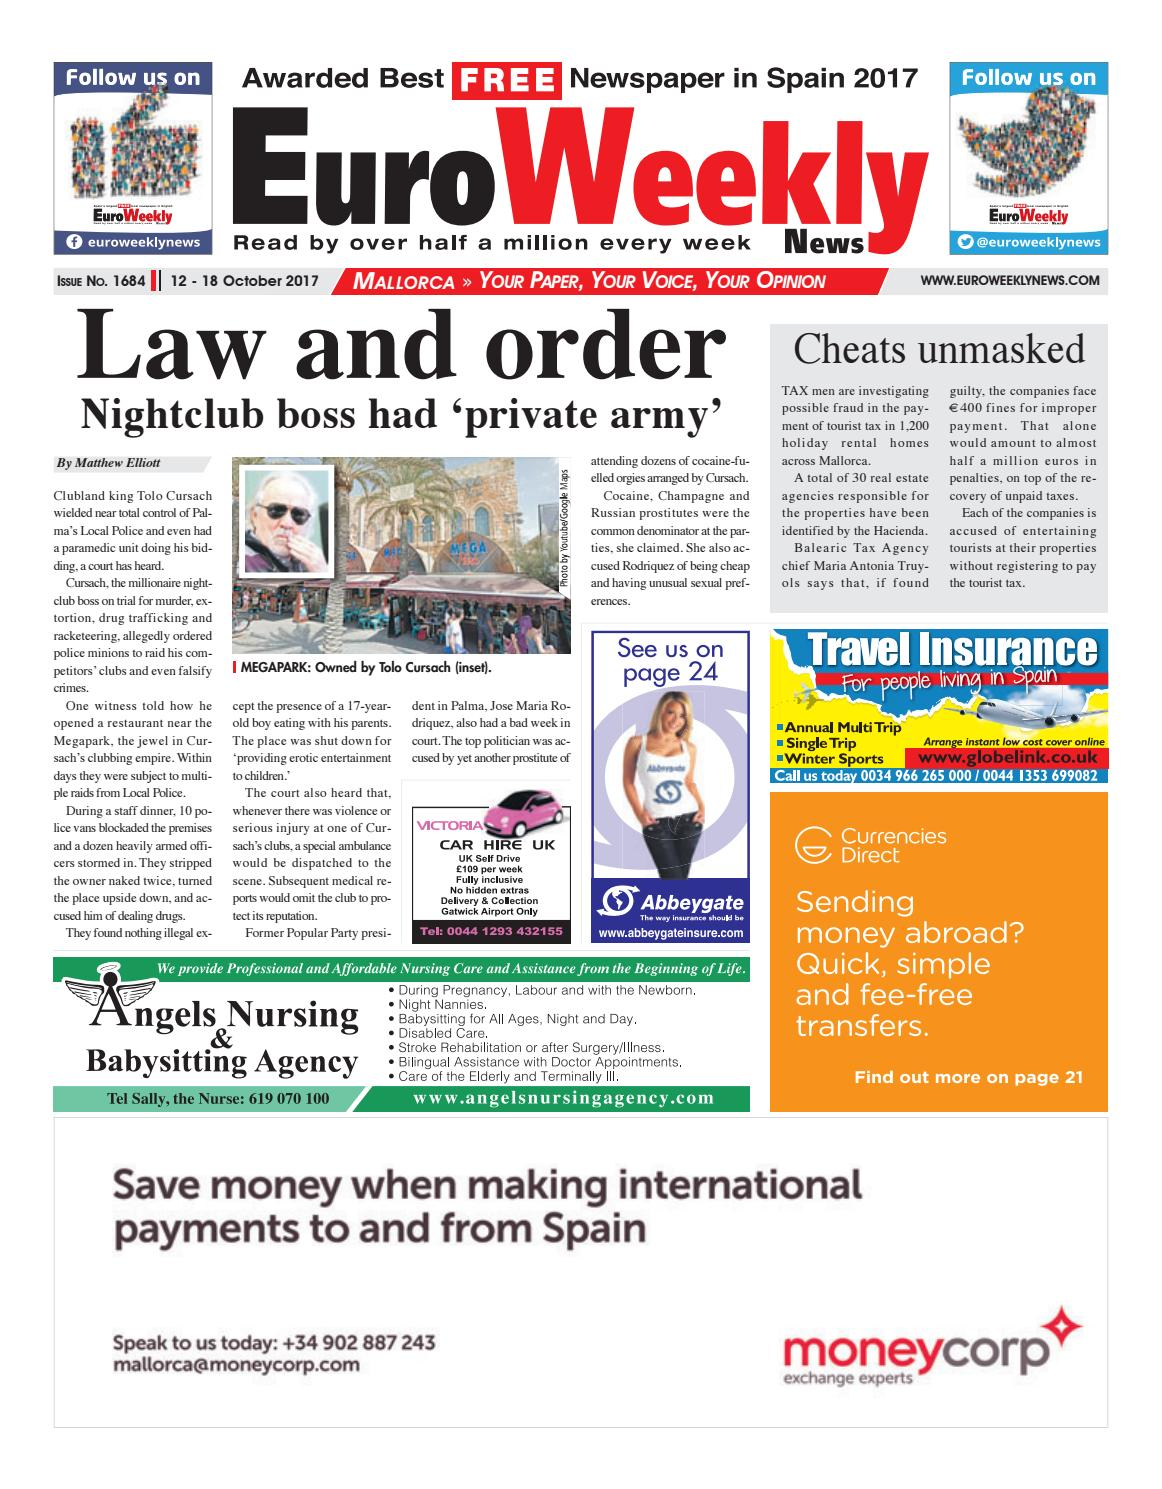 Euro weekly news mallorca 12 18 october 2017 issue 1684 by euro euro weekly news mallorca 12 18 october 2017 issue 1684 by euro weekly news media sa issuu fandeluxe Gallery